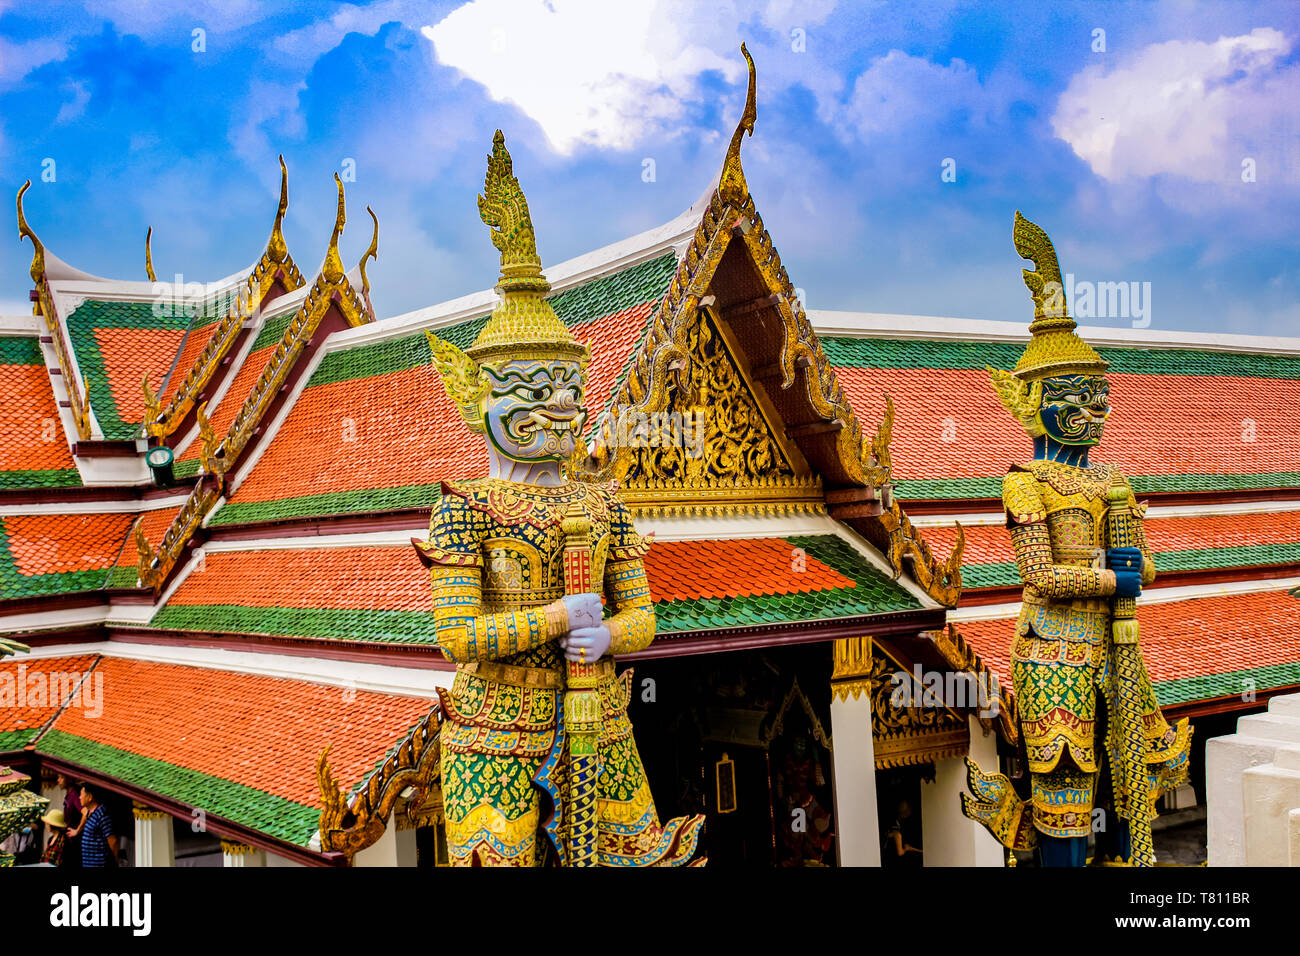 Detail of guardian statues, Grand Palace and Wat Phra Kaew (Temple of the Emerald Buddha) complex, Bangkok, Thailand, Southeast Asia, Asia Stock Photo